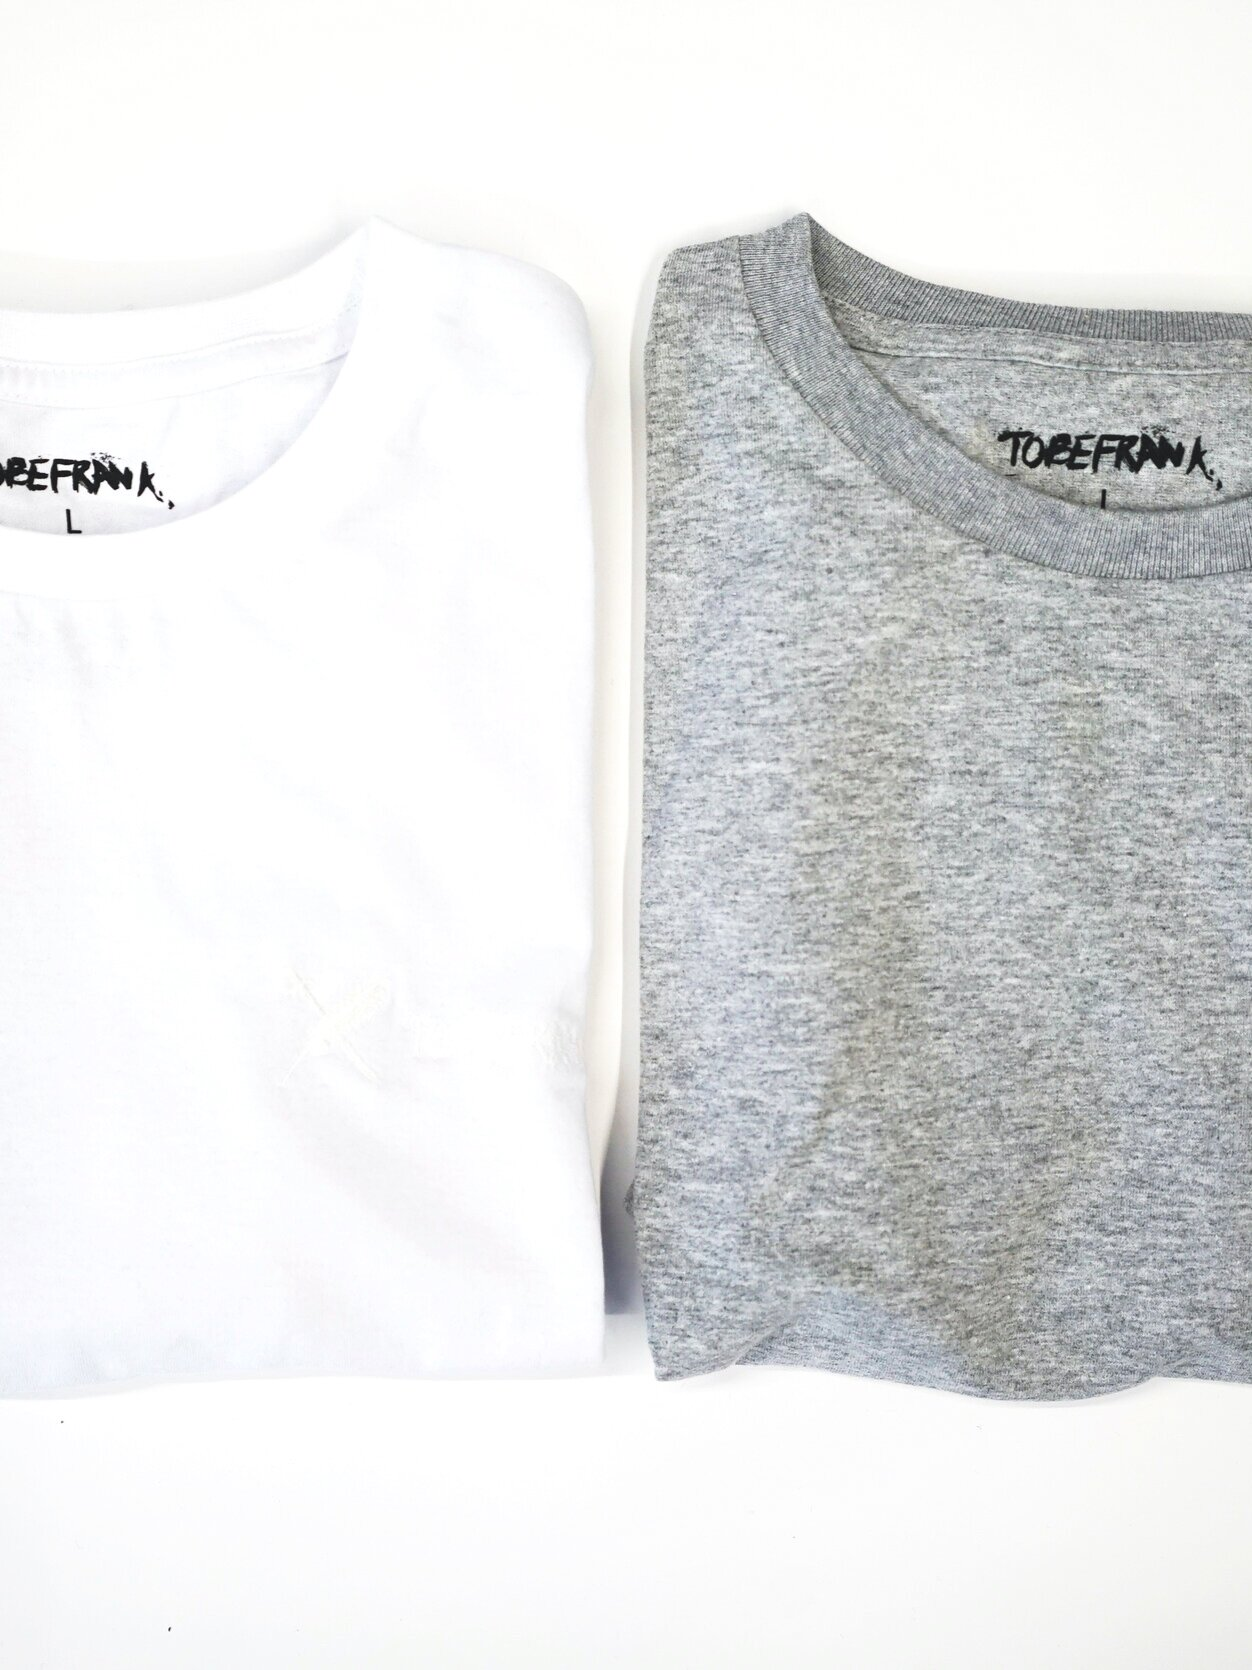 WOMENS 2 PACK 100% RECYCLED LONG SLEEVE - GREY/WHITE from TOBEFRANK